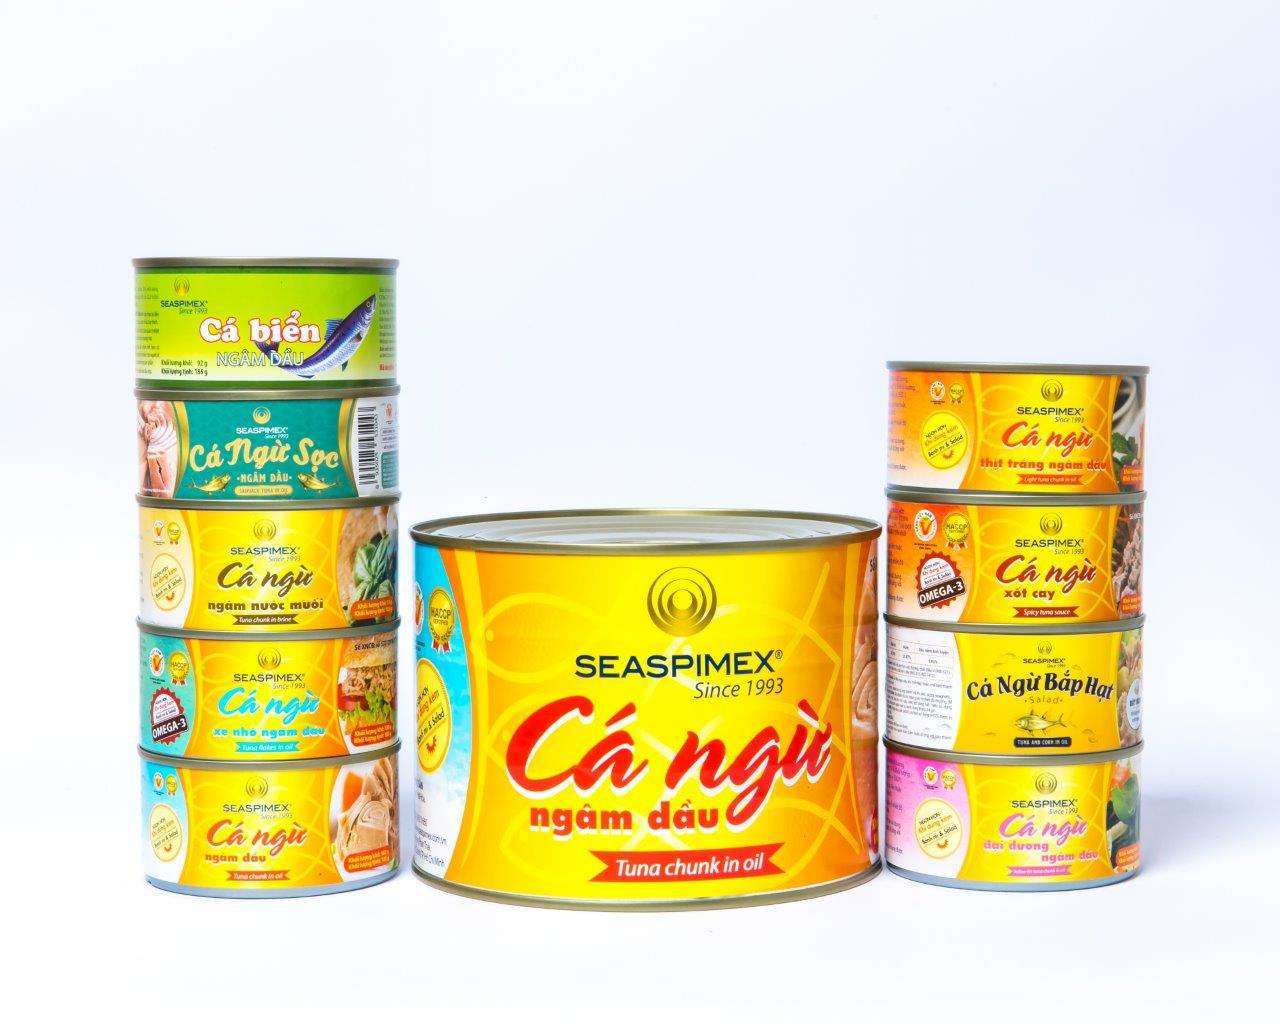 BEST SELLING CANNED 100% TONGGOL BONITO TUNA FISH IN VEGETABLE OIL FROM VIET NAM SEA